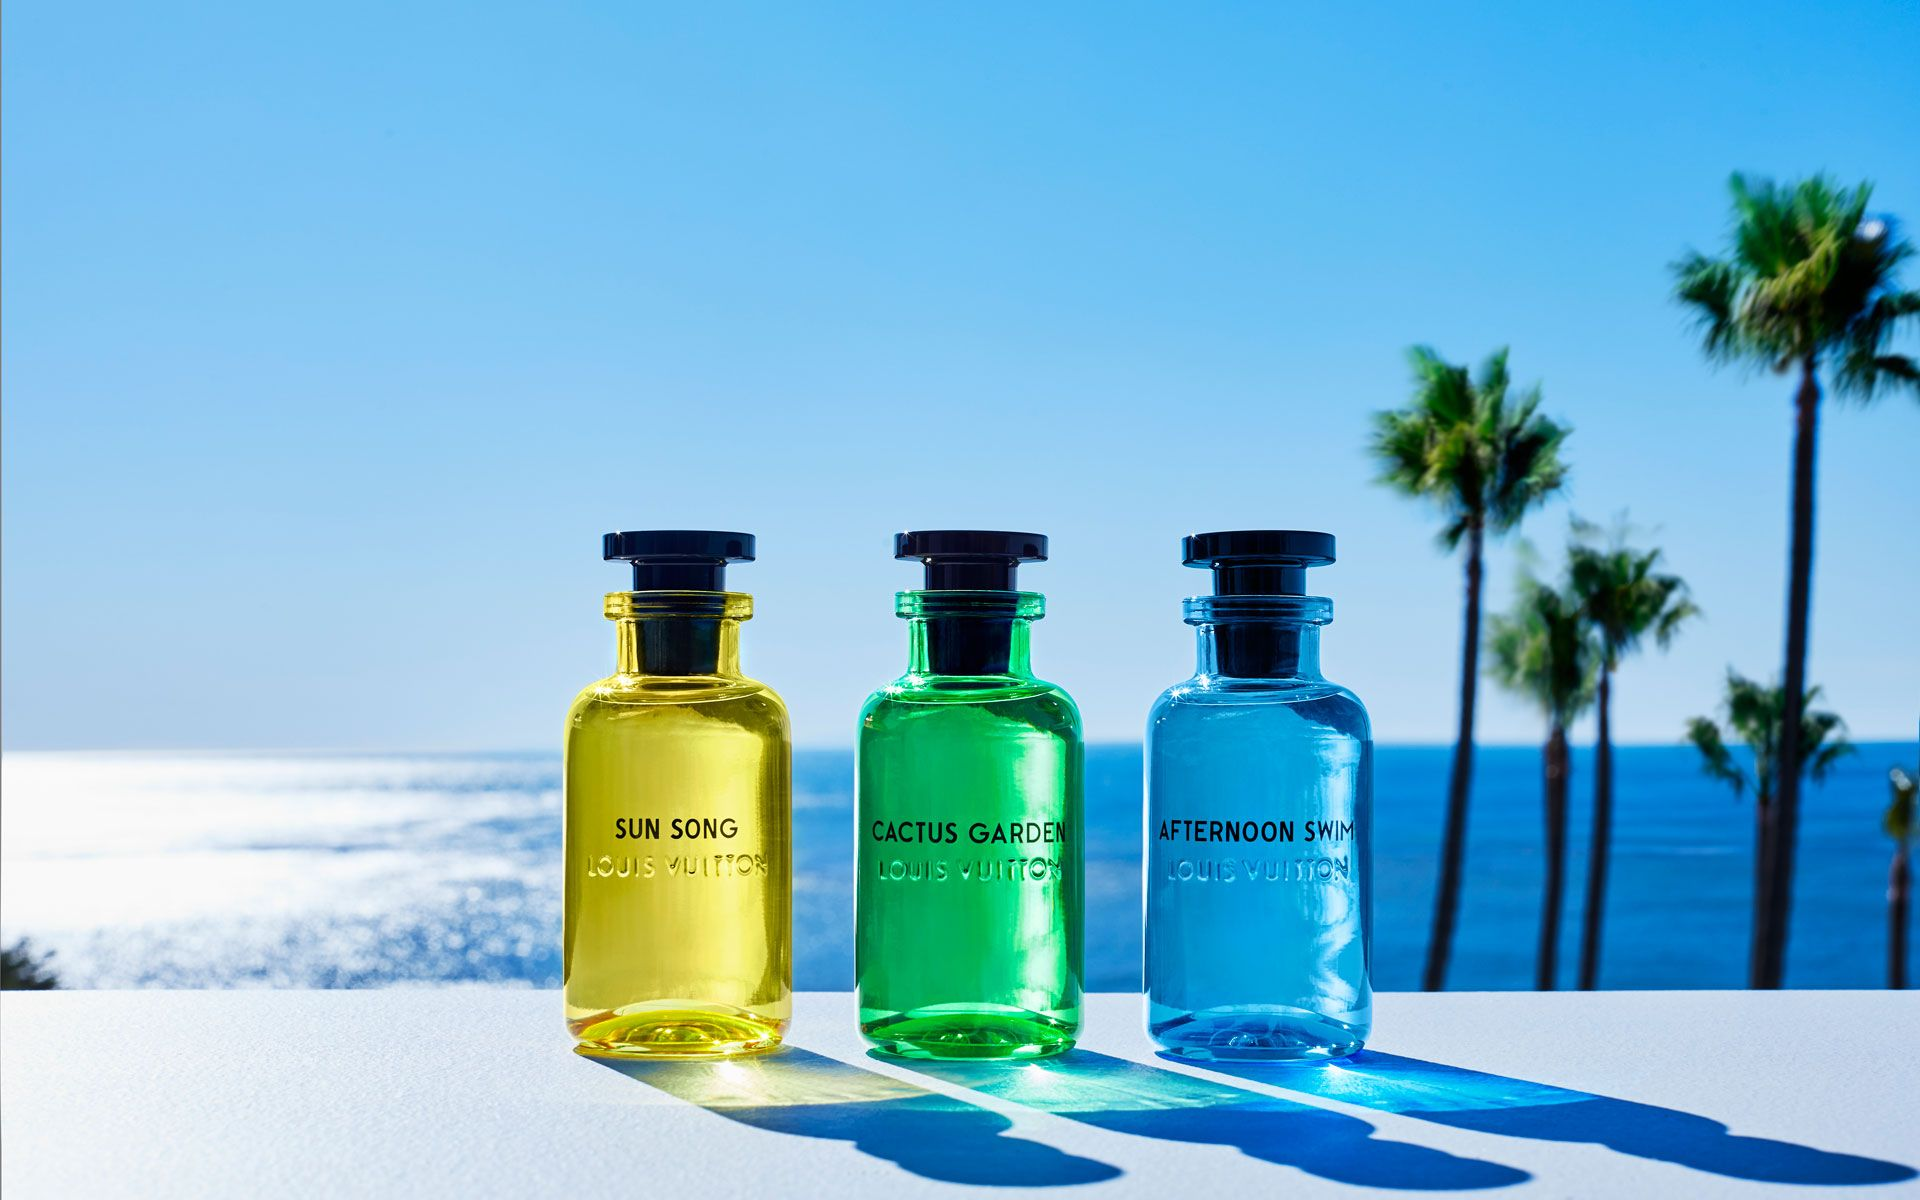 You Can't Go Wrong With These Luxurious New Men's Fragrances